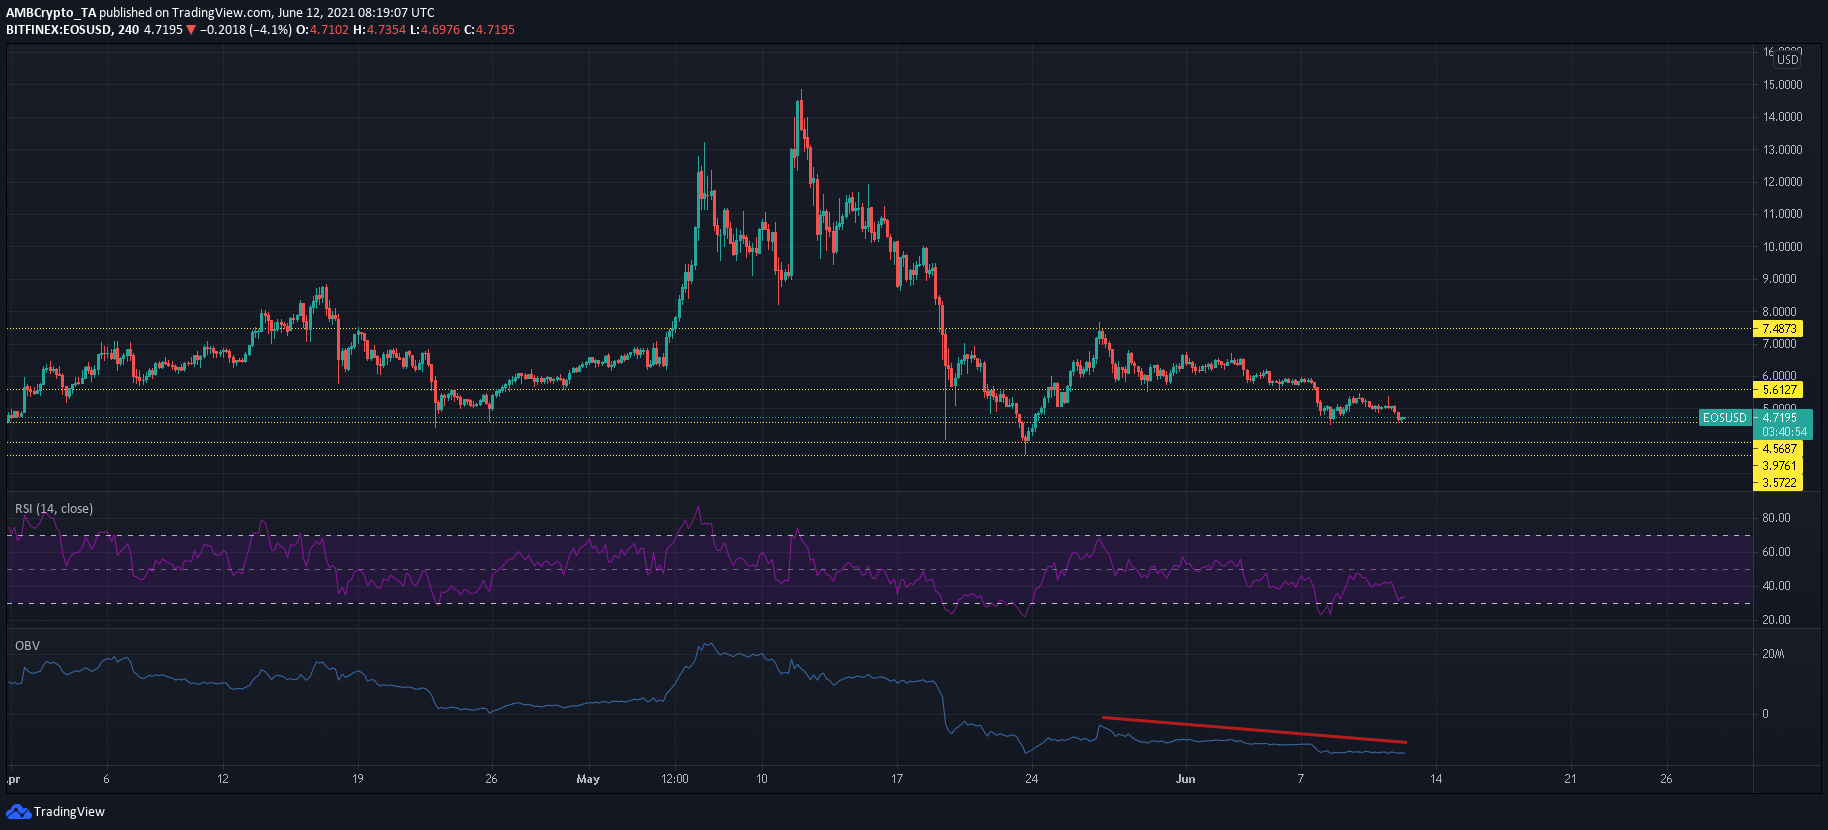 EOS, Synthetix, Compound Price Movement Analysis for 12th June, 2021